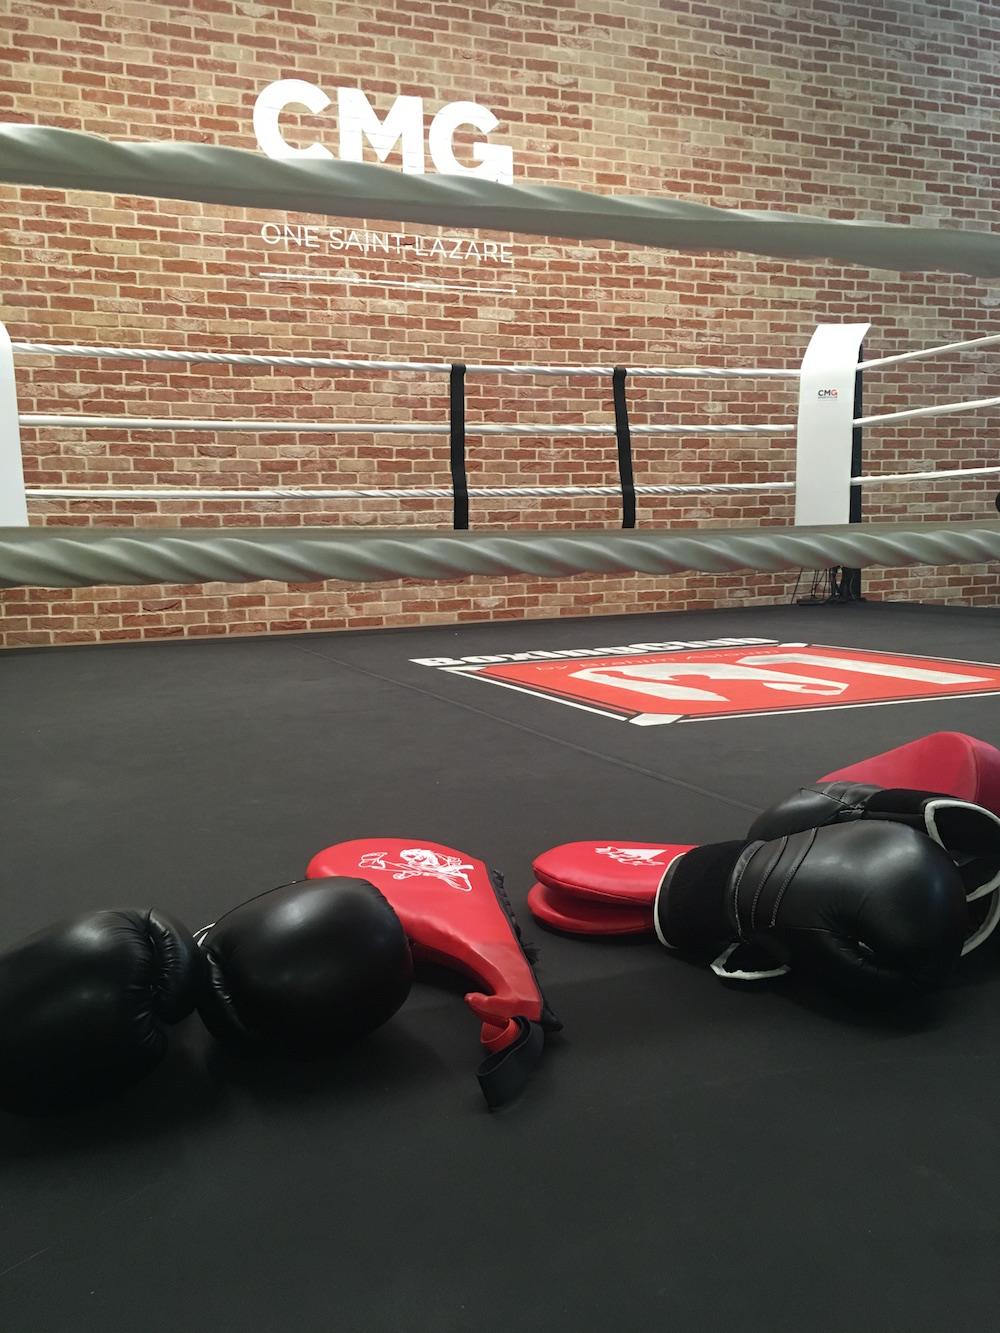 boxing club CMG sport club